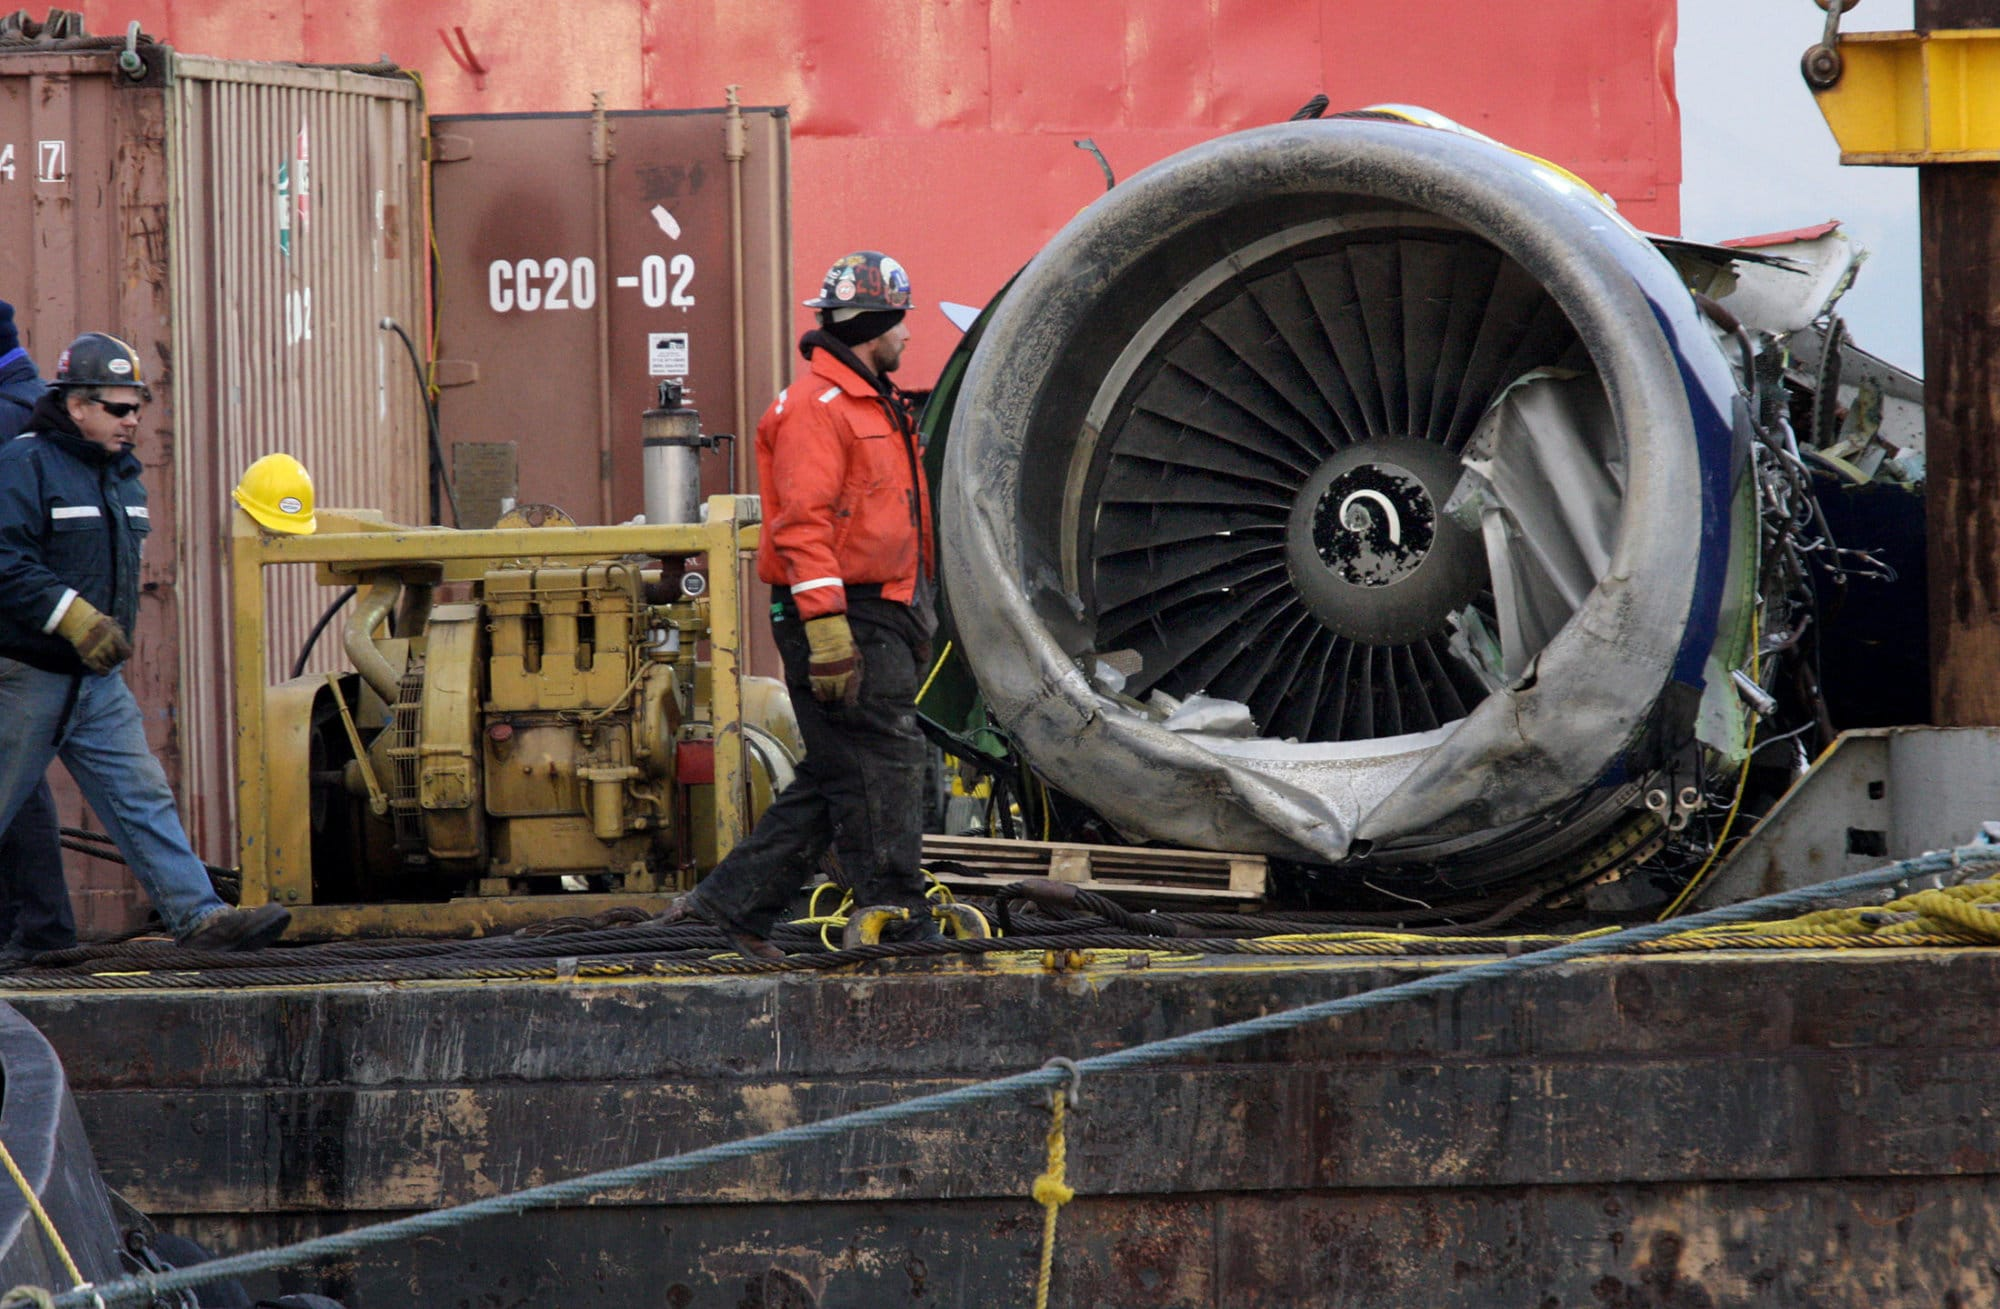 ** ADVANCE FOR TUESDAY, MAY 26 AND THEREAFTER ** FILE - In this Jan. 23, 2009 file photo, the engine of US Airlines Flight 1549 that crash landed into the water on Jan. 15 can be seen resting on a barge after it was retrieved from the icy Hudson River in New York by salvage crews. About 700 yards from the end of a LaGuardia Airport runway, where thousands of planes take off and land, New York officials want to build what could be the equivalent of a bird magnet: A very large garbage transfer station. This, just five months after a run-in with birds sent a jet full of people into the Hudson River. (AP Photo/Craig Ruttle, FILE)